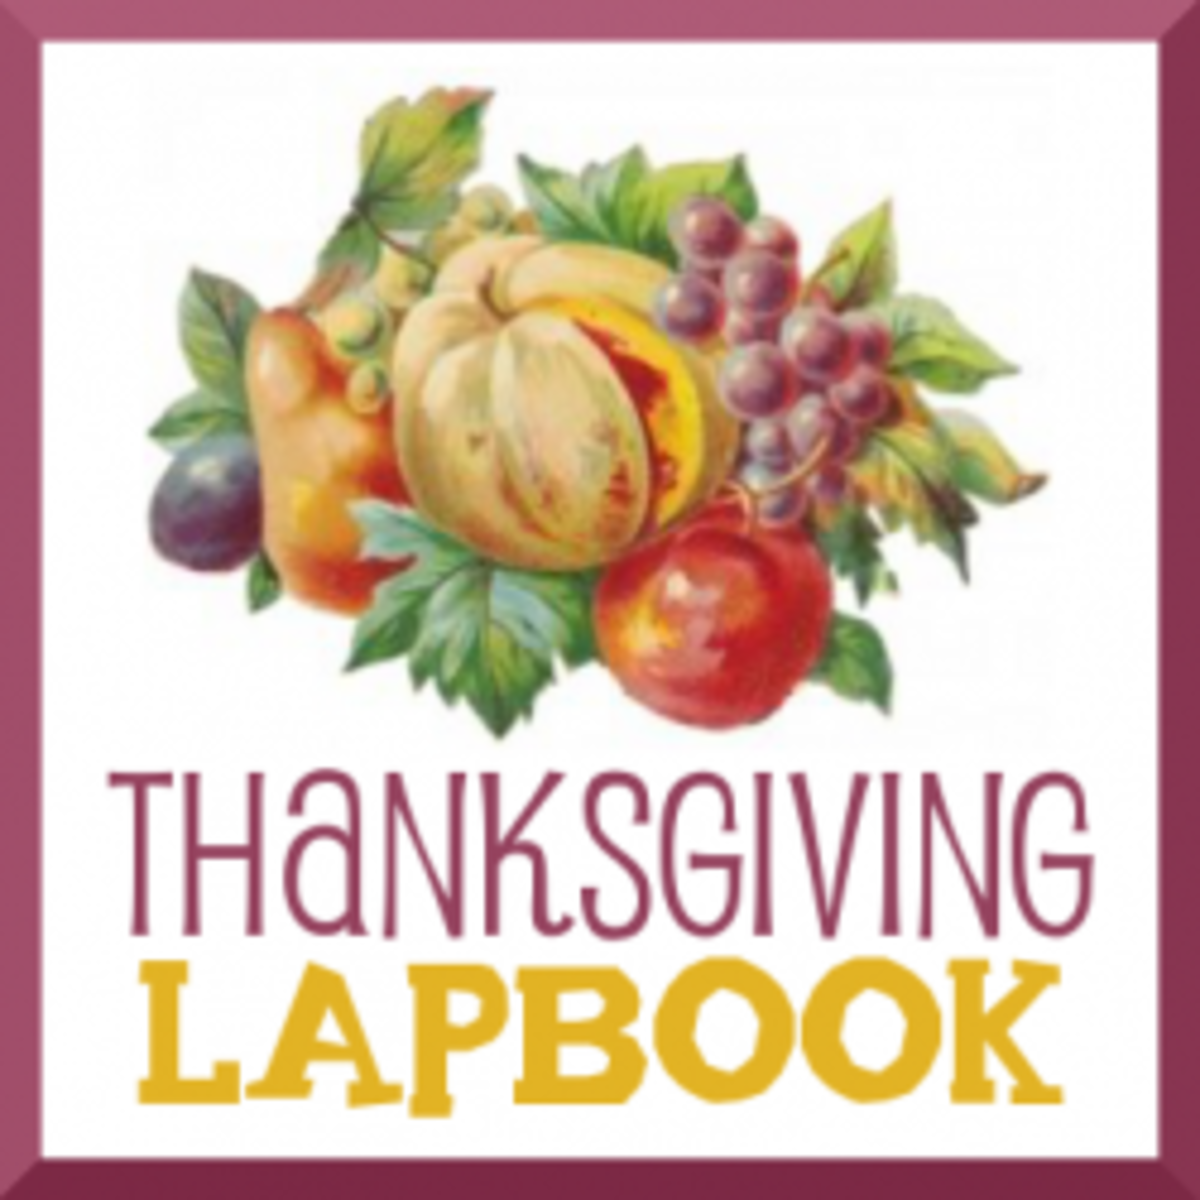 thanksgivinglapbook